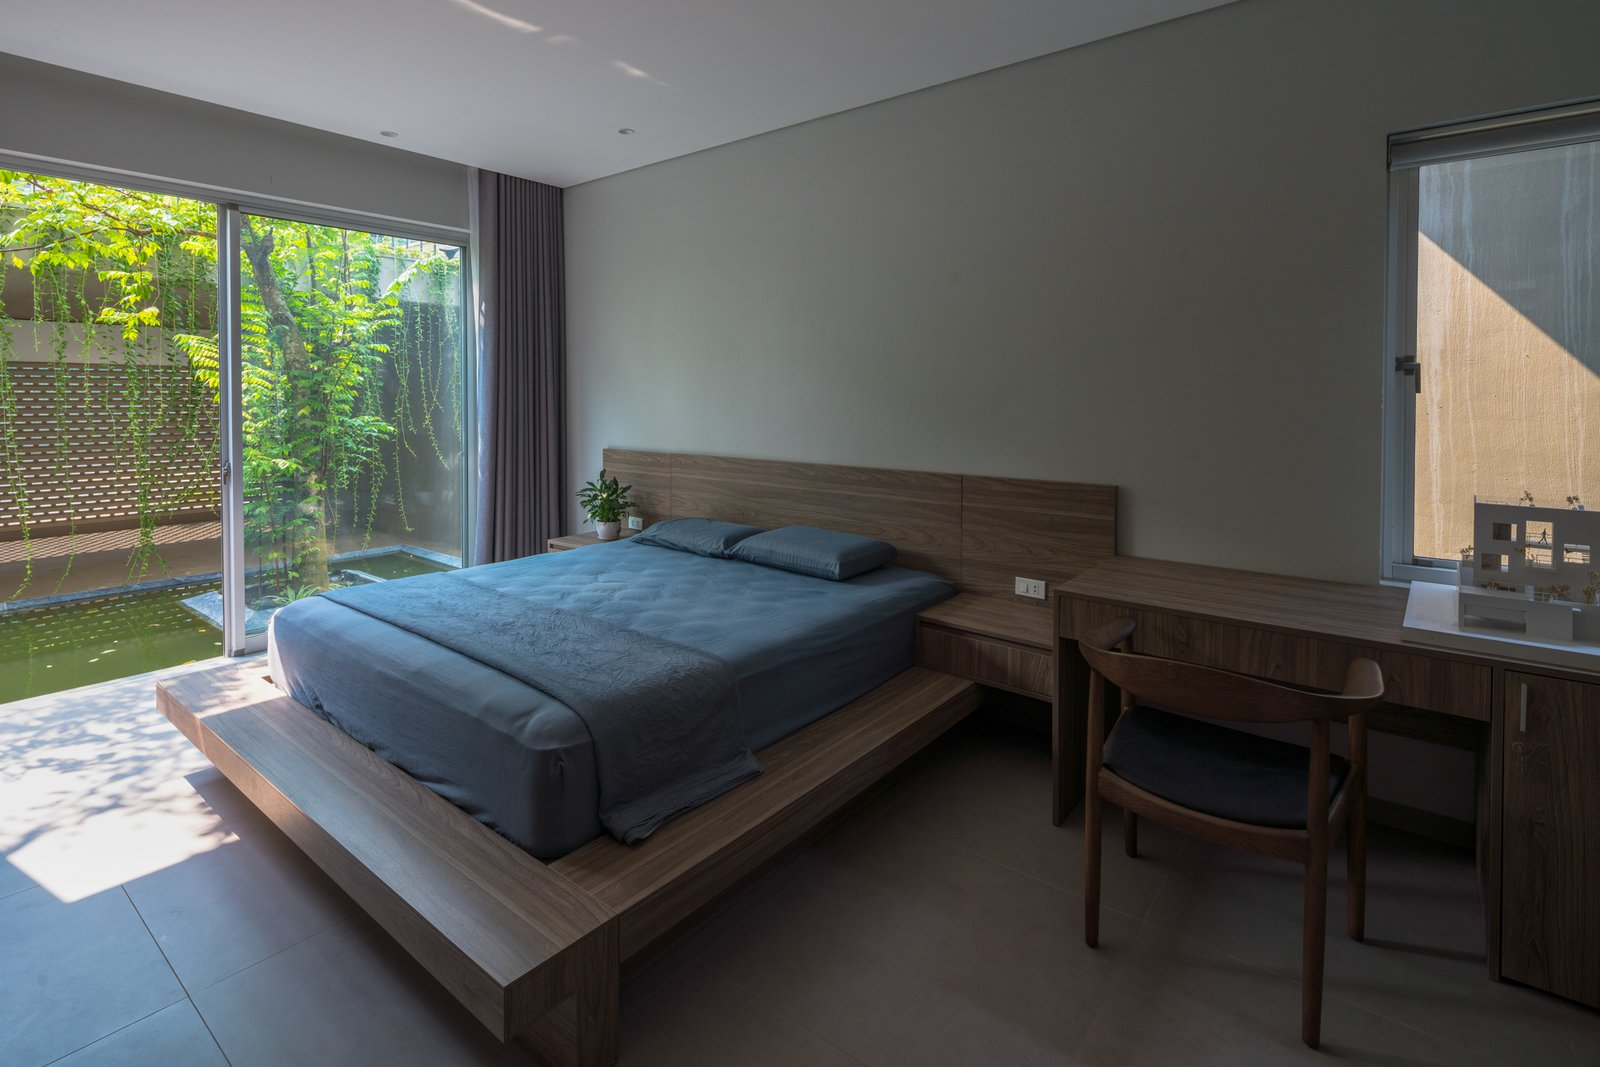 Bedroom, Chair, Ceramic Tile Floor, Ceiling Lighting, and Bed Taking advantage of the natural light, ventilation and greenery, the house has a pleasant atmosphere, friendly with the environment, saving the cost of lighting and air conditioning in living.  Ninh Binh House